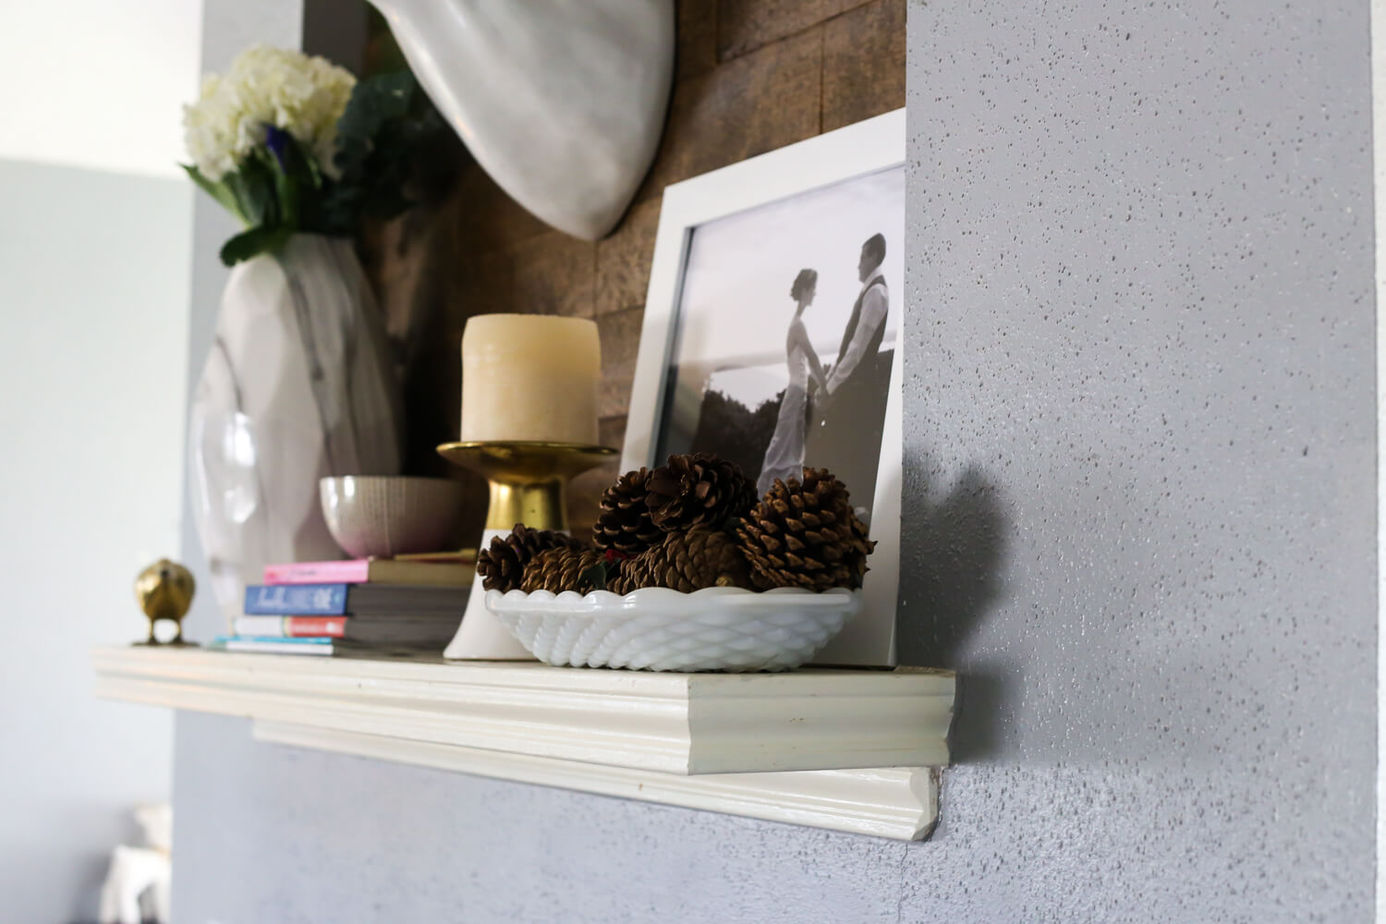 A bright winter mantel for when you feel like you're ready for spring. All it takes to make the room feel refreshed is to add a little color and depth to your decor - a little goes a long way!